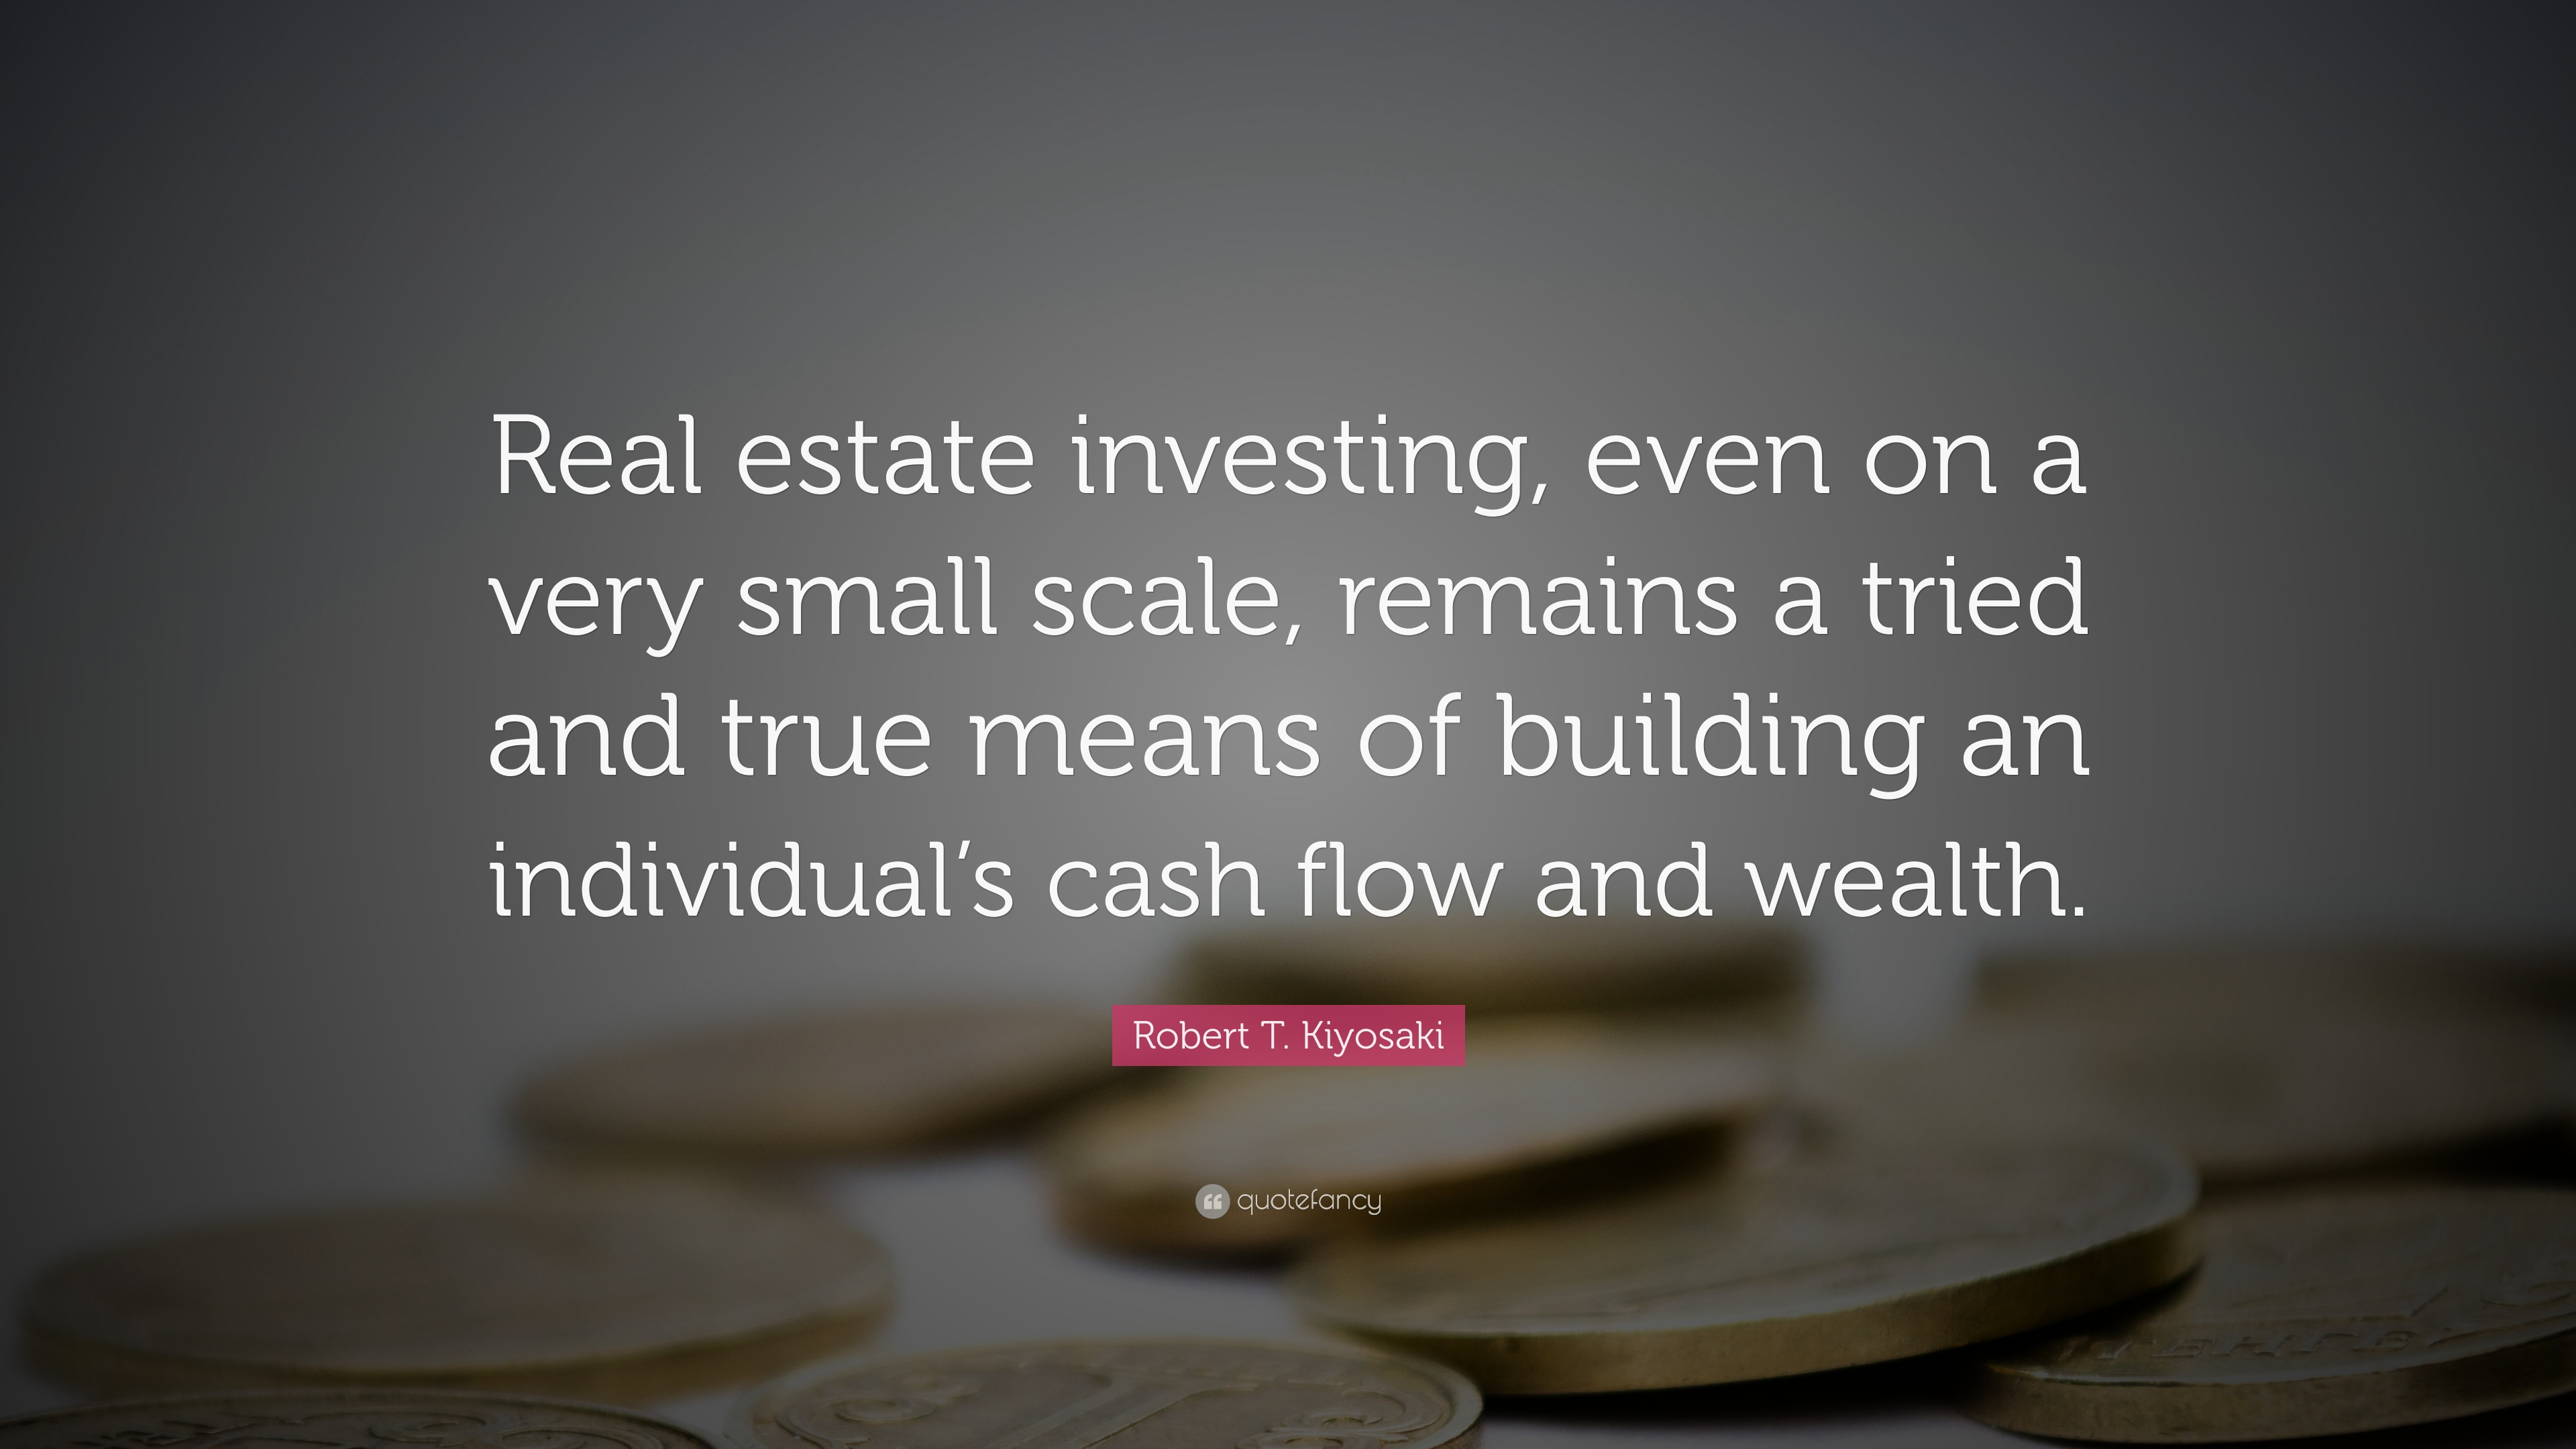 robert t  kiyosaki quote   u201creal estate investing  even on